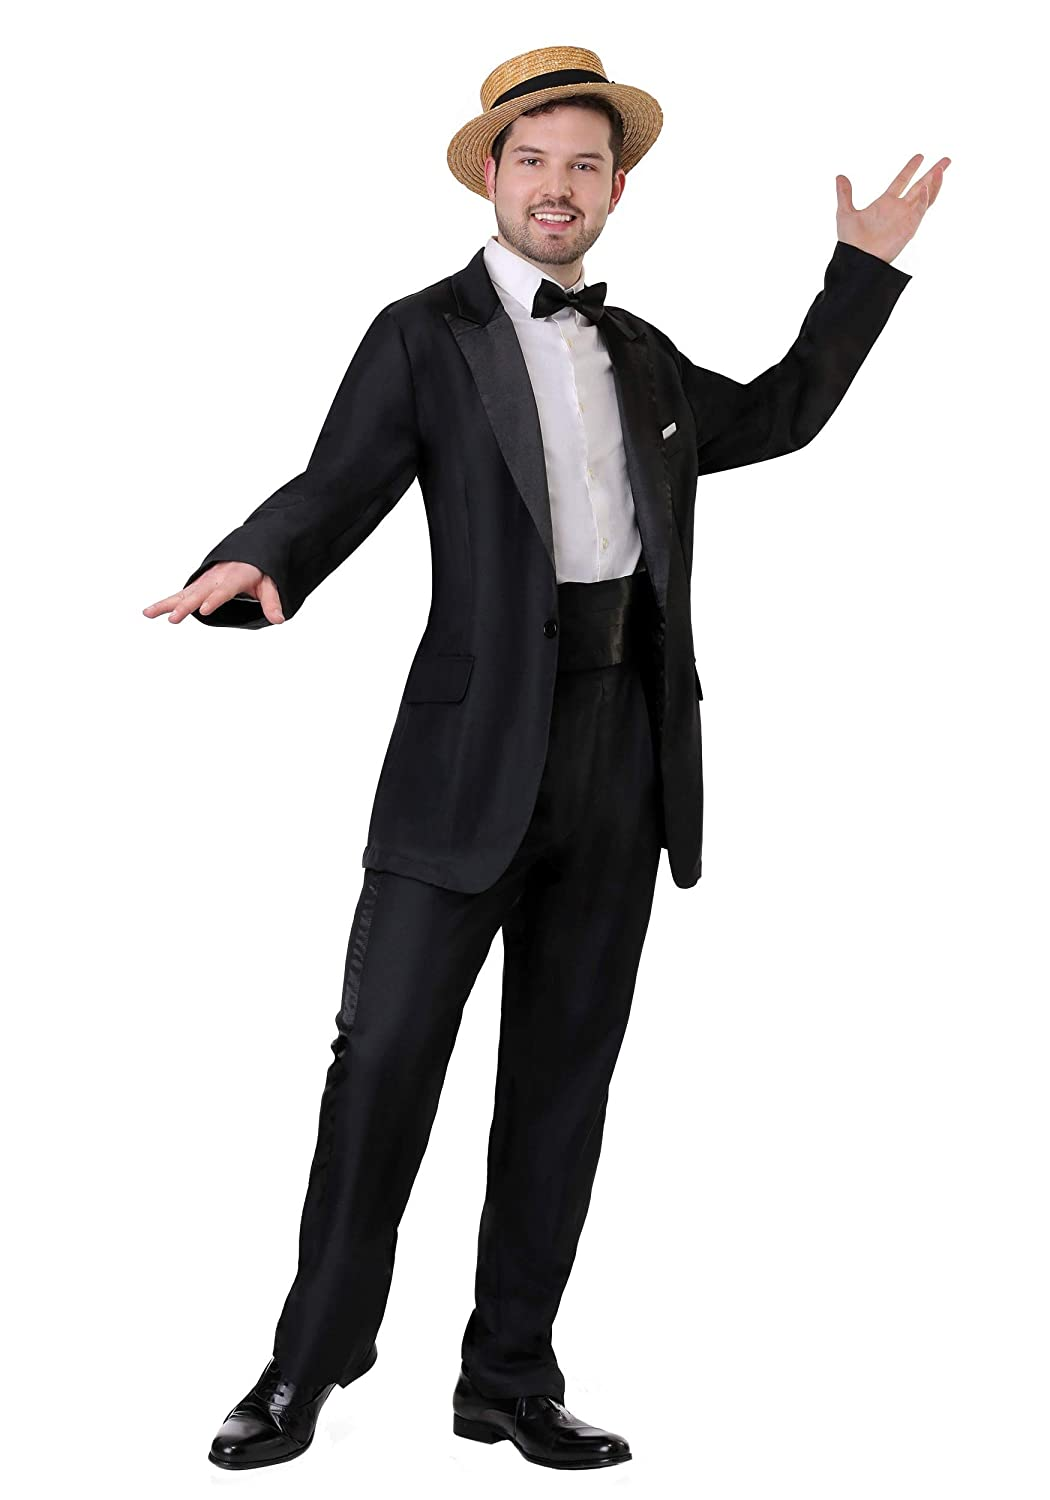 Men's Vintage Style Suits, Classic Suits Mens I Love Lucy Ricky Ricardo Costume $34.99 AT vintagedancer.com